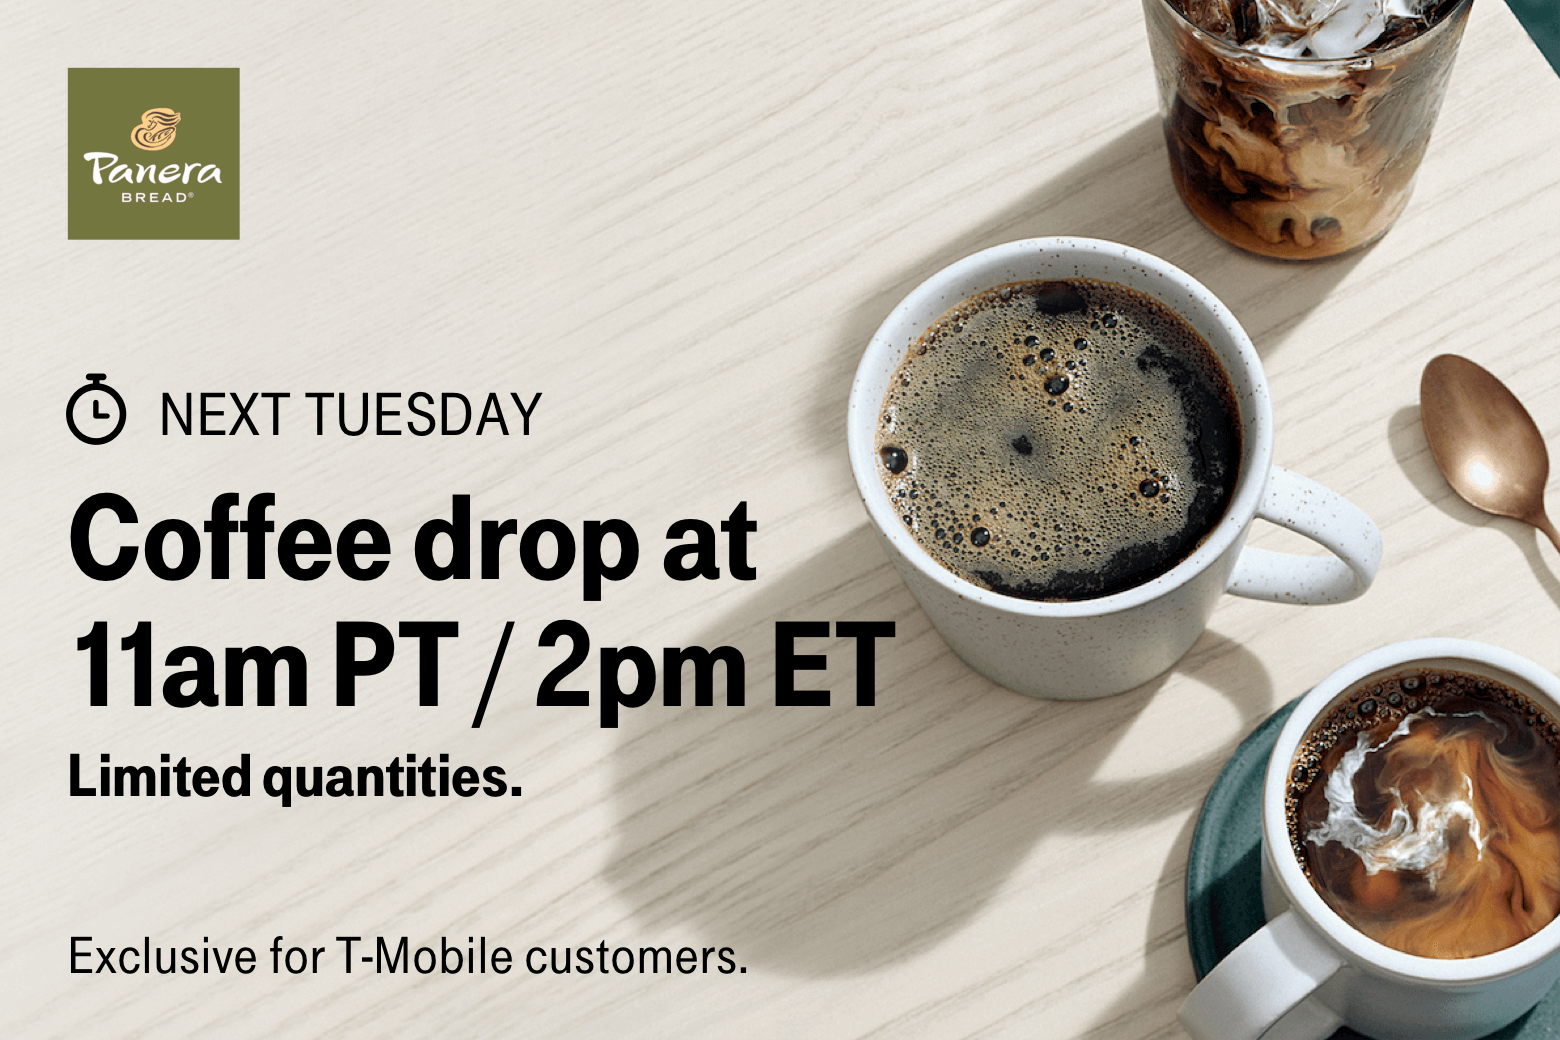 Panera. Next Tuesday. Coffee drop at 11am PT / 2pm ET. Limited quantities. Exclusive for T-Mobile customers.